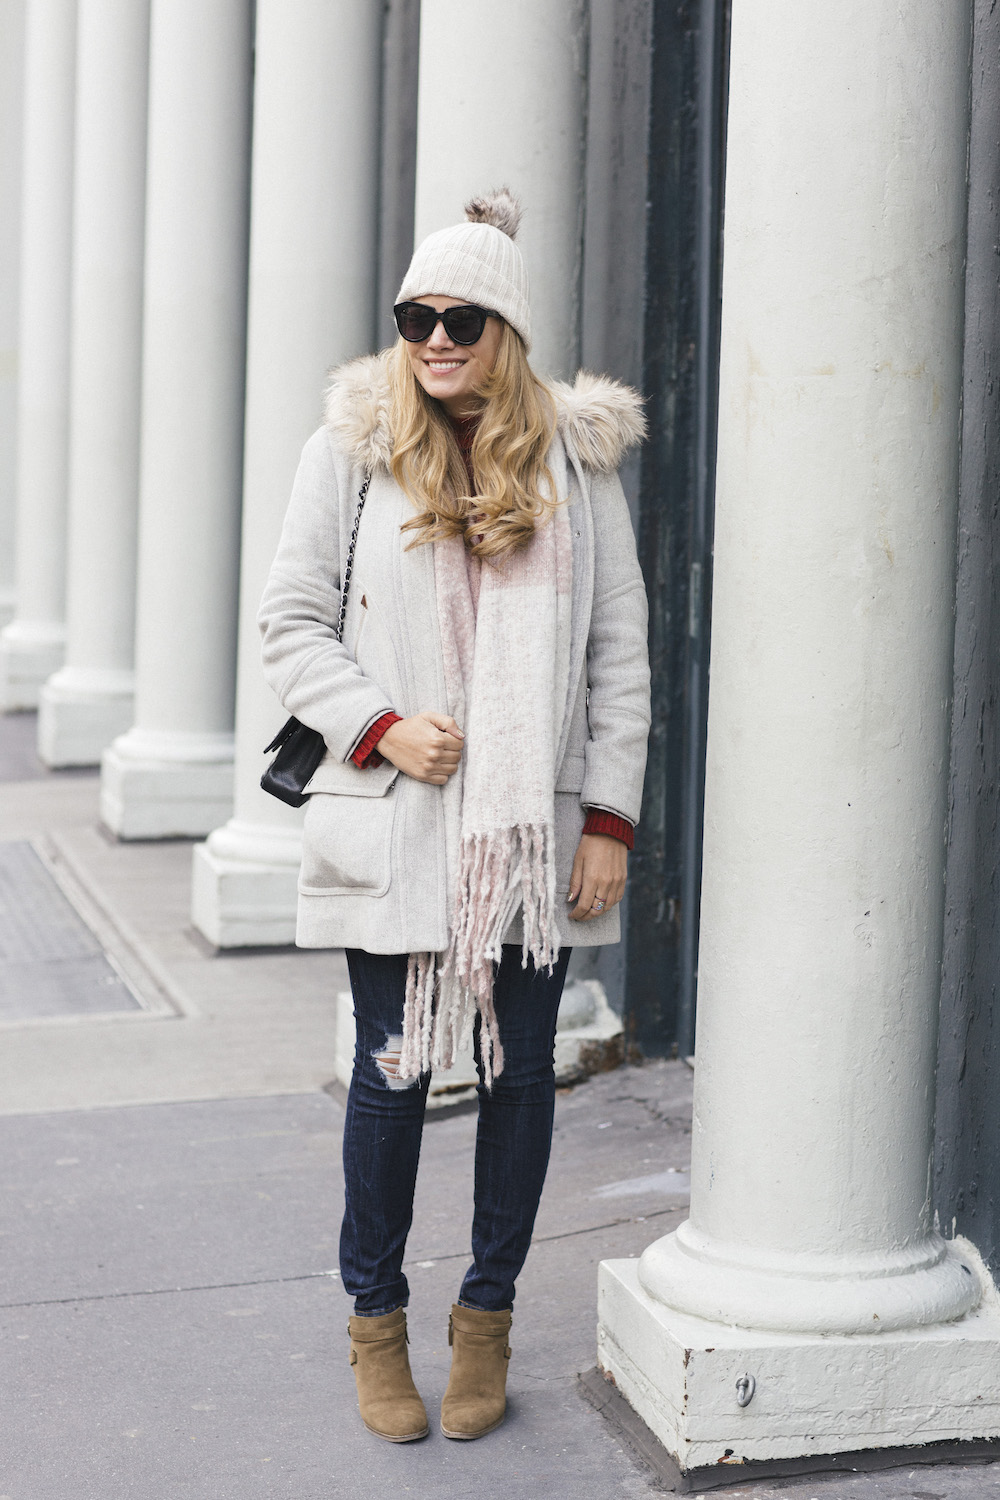 J.Crew Chateau Parka, Good American Jeans - A Cozy Winter Outfit Idea | Grace Atwood, The Stripe